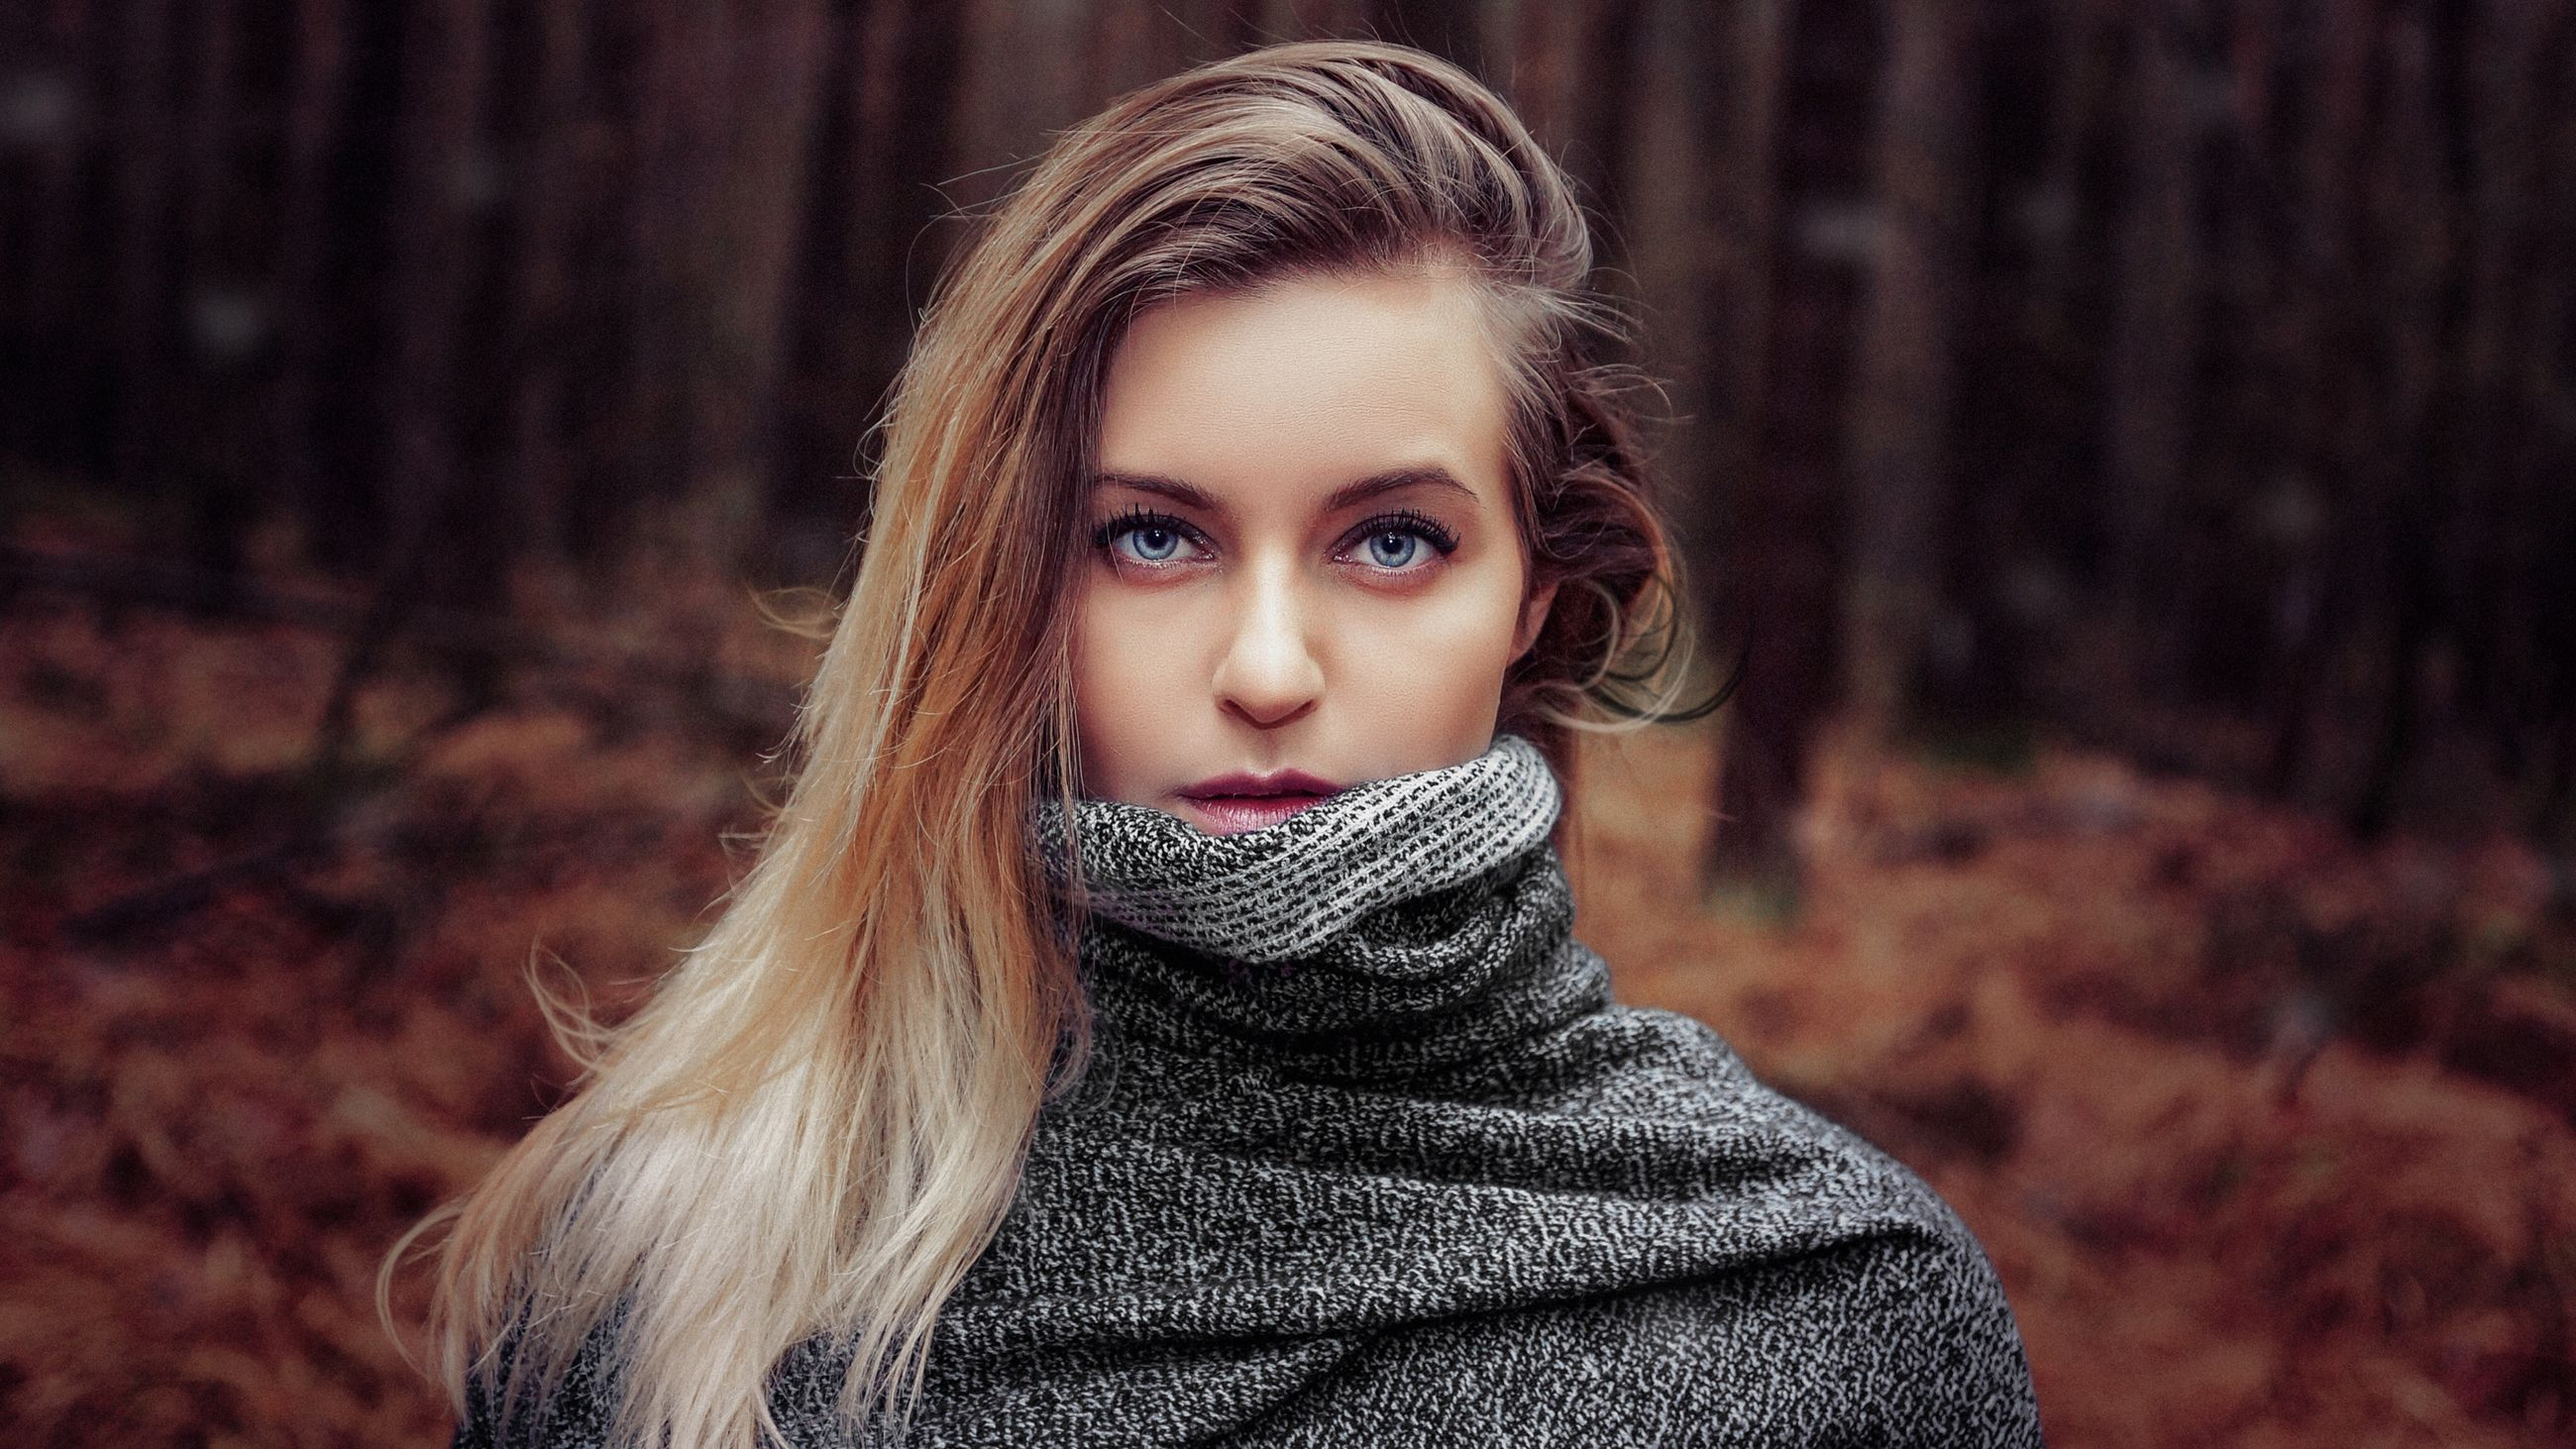 portrait, beautiful people, beauty, fashion, females, looking at camera, headshot, human body part, one person, winter, women, warm clothing, people, beautiful woman, adults only, adult, close-up, young adult, one woman only, only women, outdoors, day